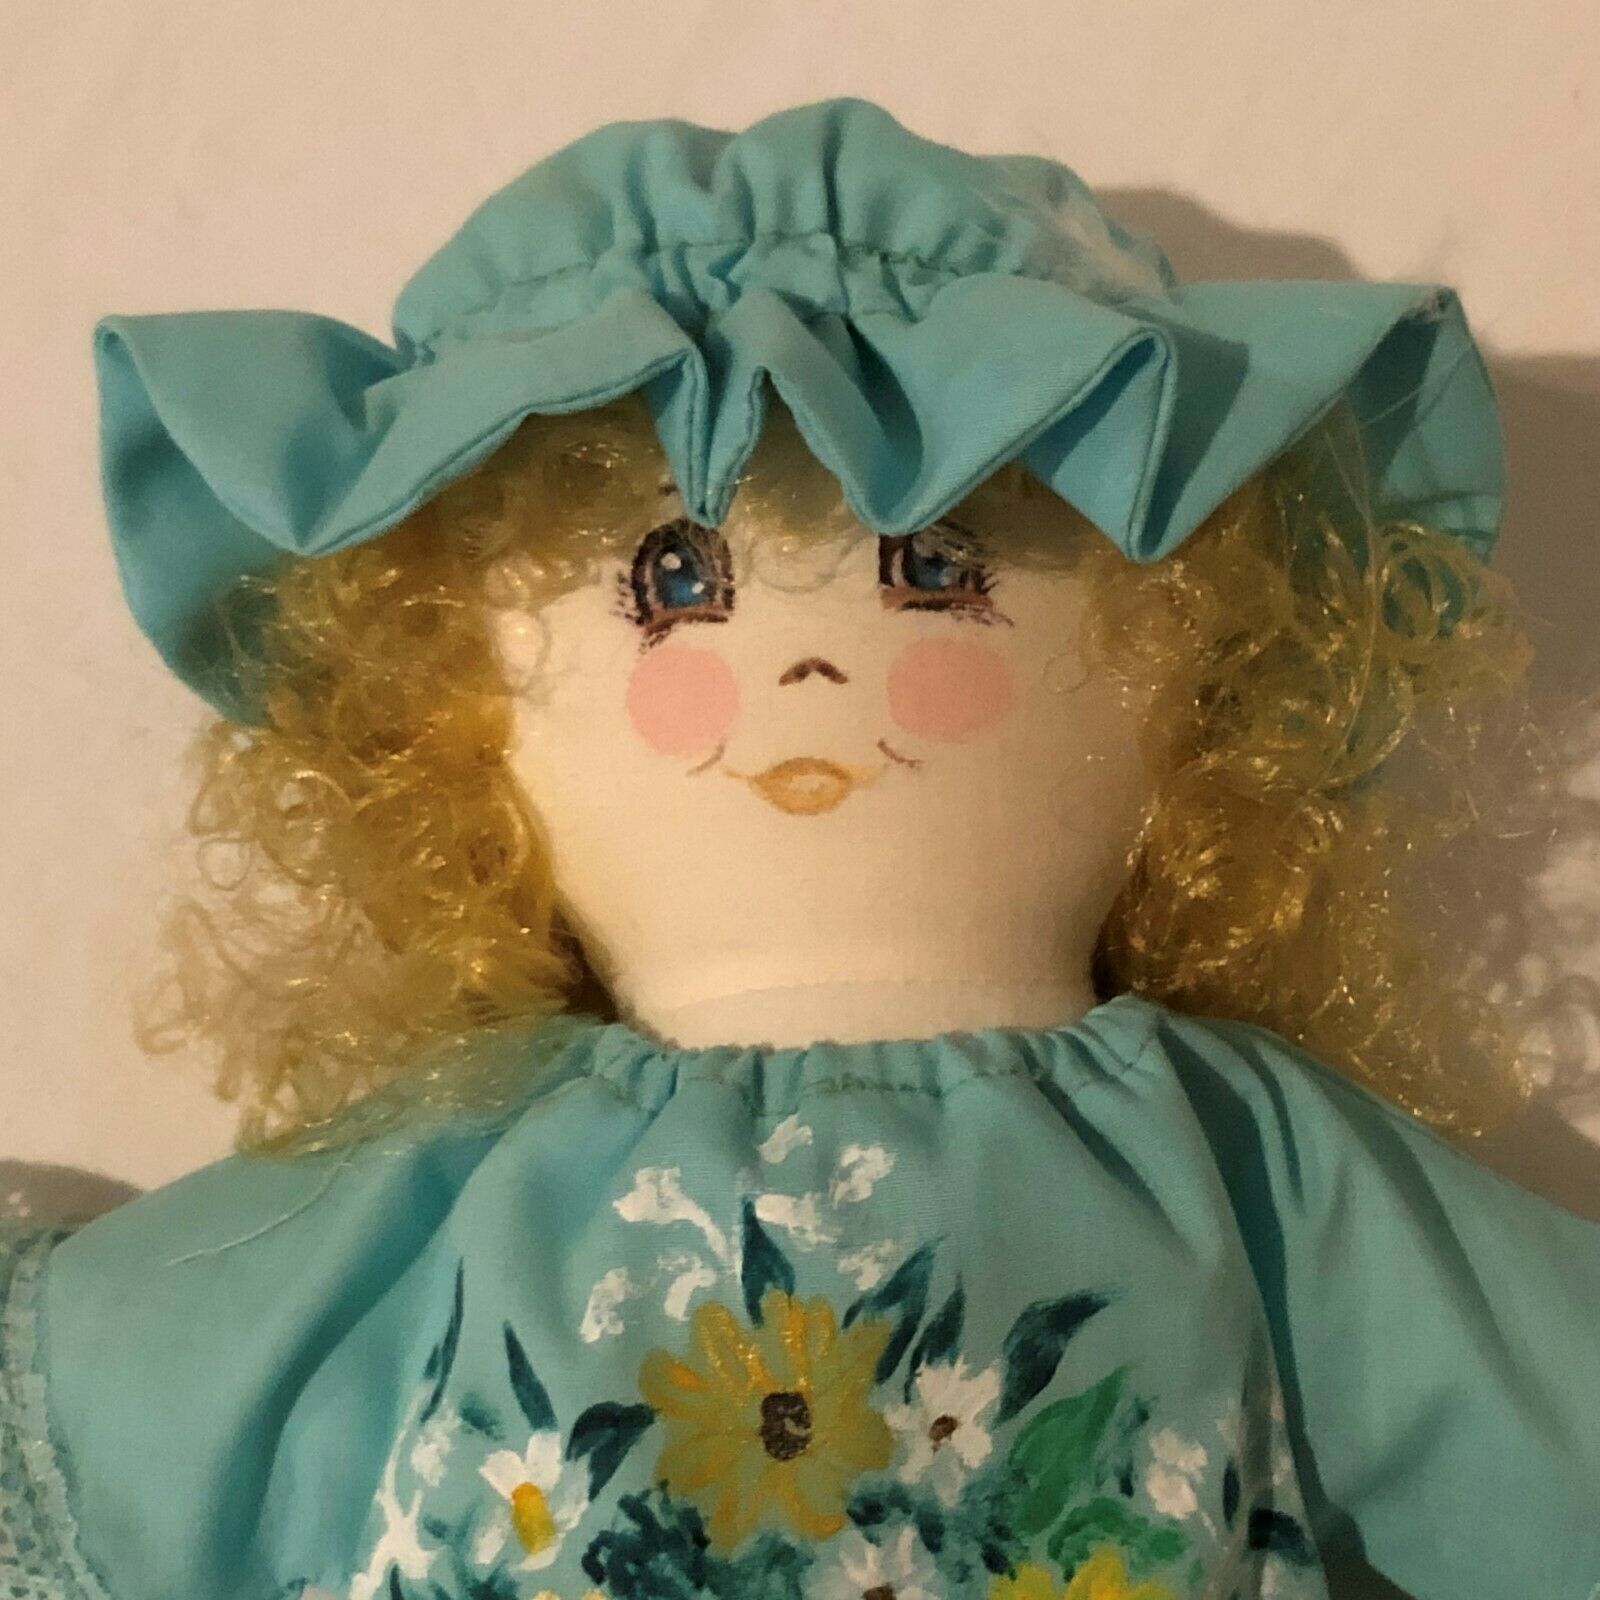 Primary image for Handmade Cloth Rag Doll Vintage Stuffed Wall Hanging Decor Homemade Painted Gown